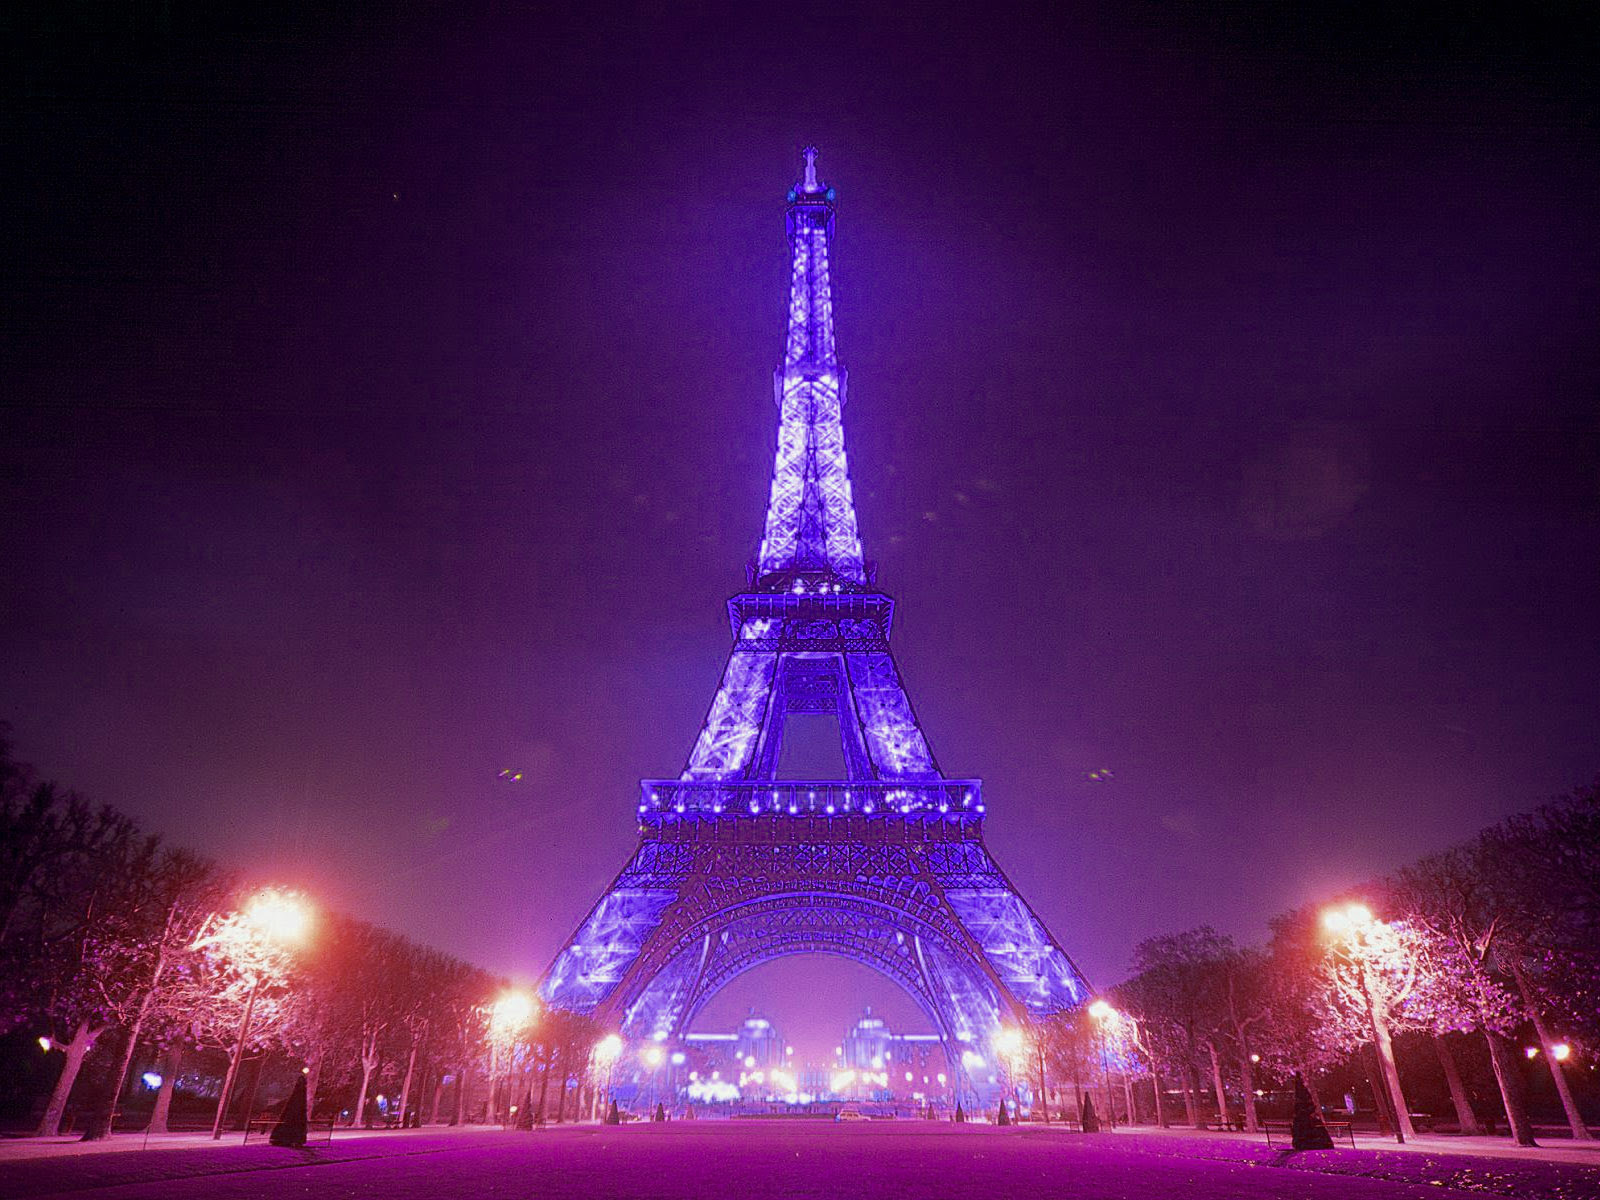 Eiffel Tower Wallpaper Free HD Backgrounds Images Pictures